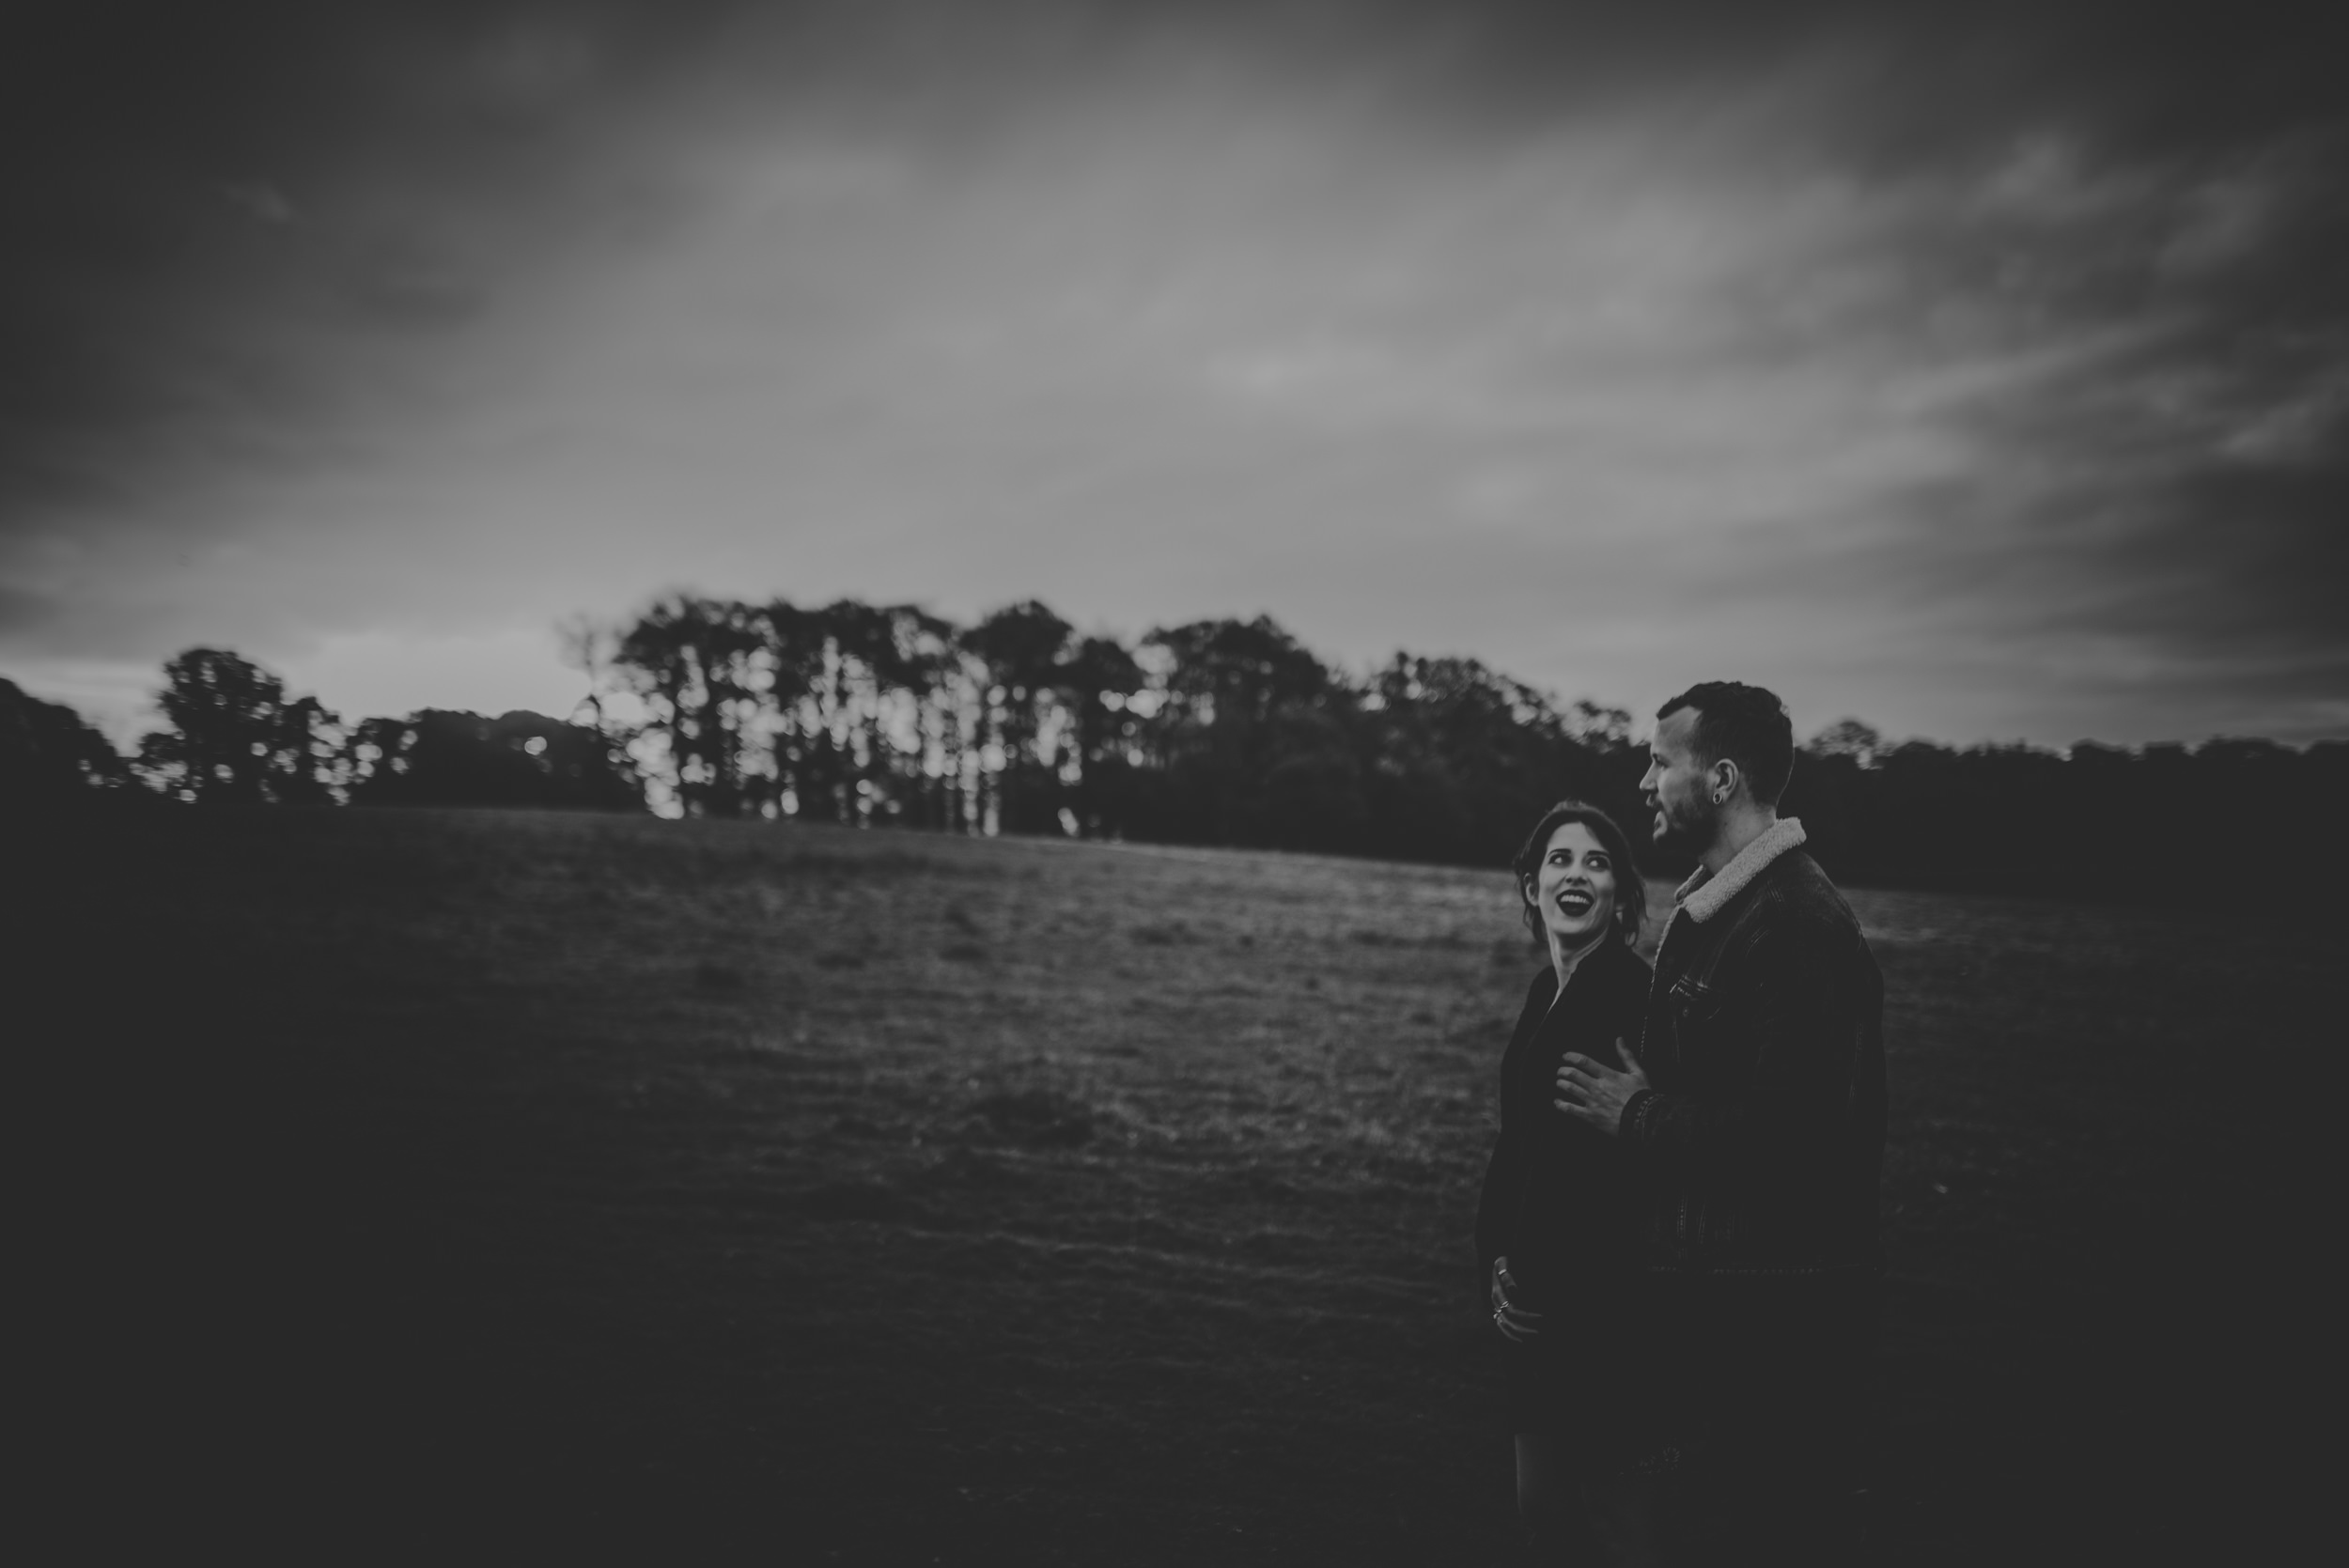 Marissa-and-Ash-Engagement-Sesion-in-Windsor-Great-Park-The-Long-Walk-Berkshire-Manu-Mendoza-Wedding-Photography-038.jpg